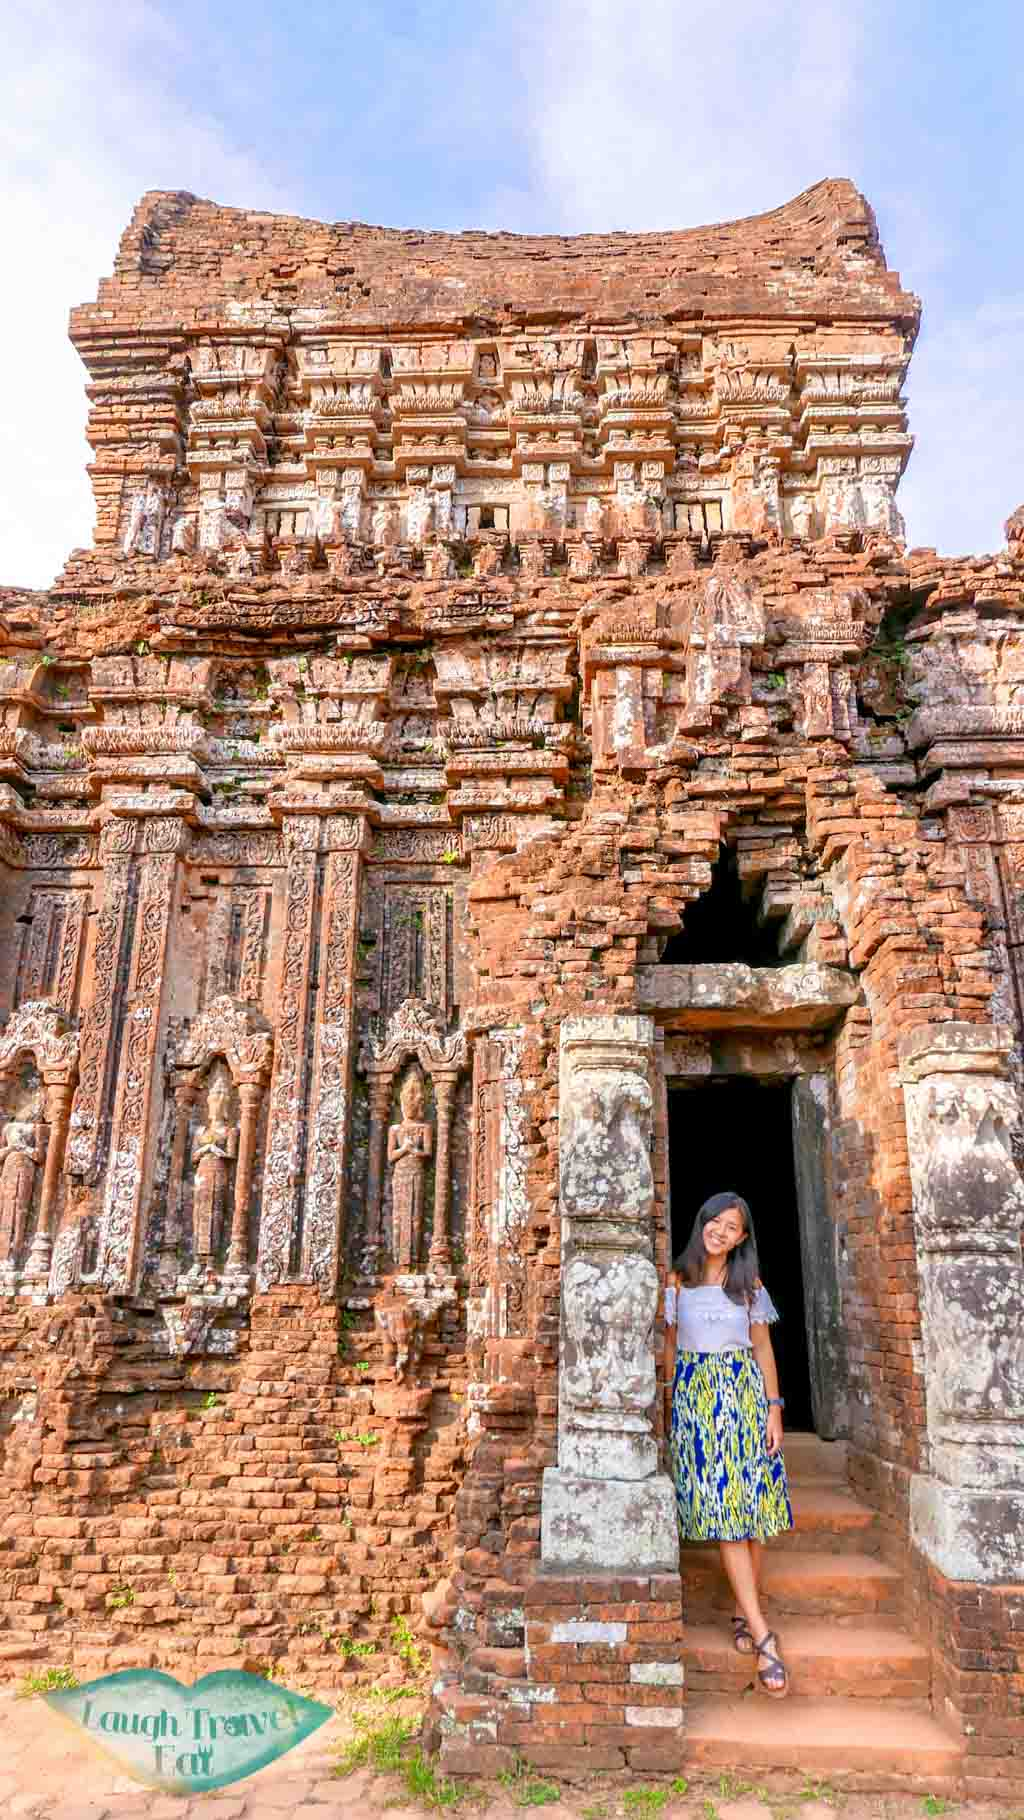 My Son Hindu brick temple, Hoi An, Vietnam - Laugh Travel Eat